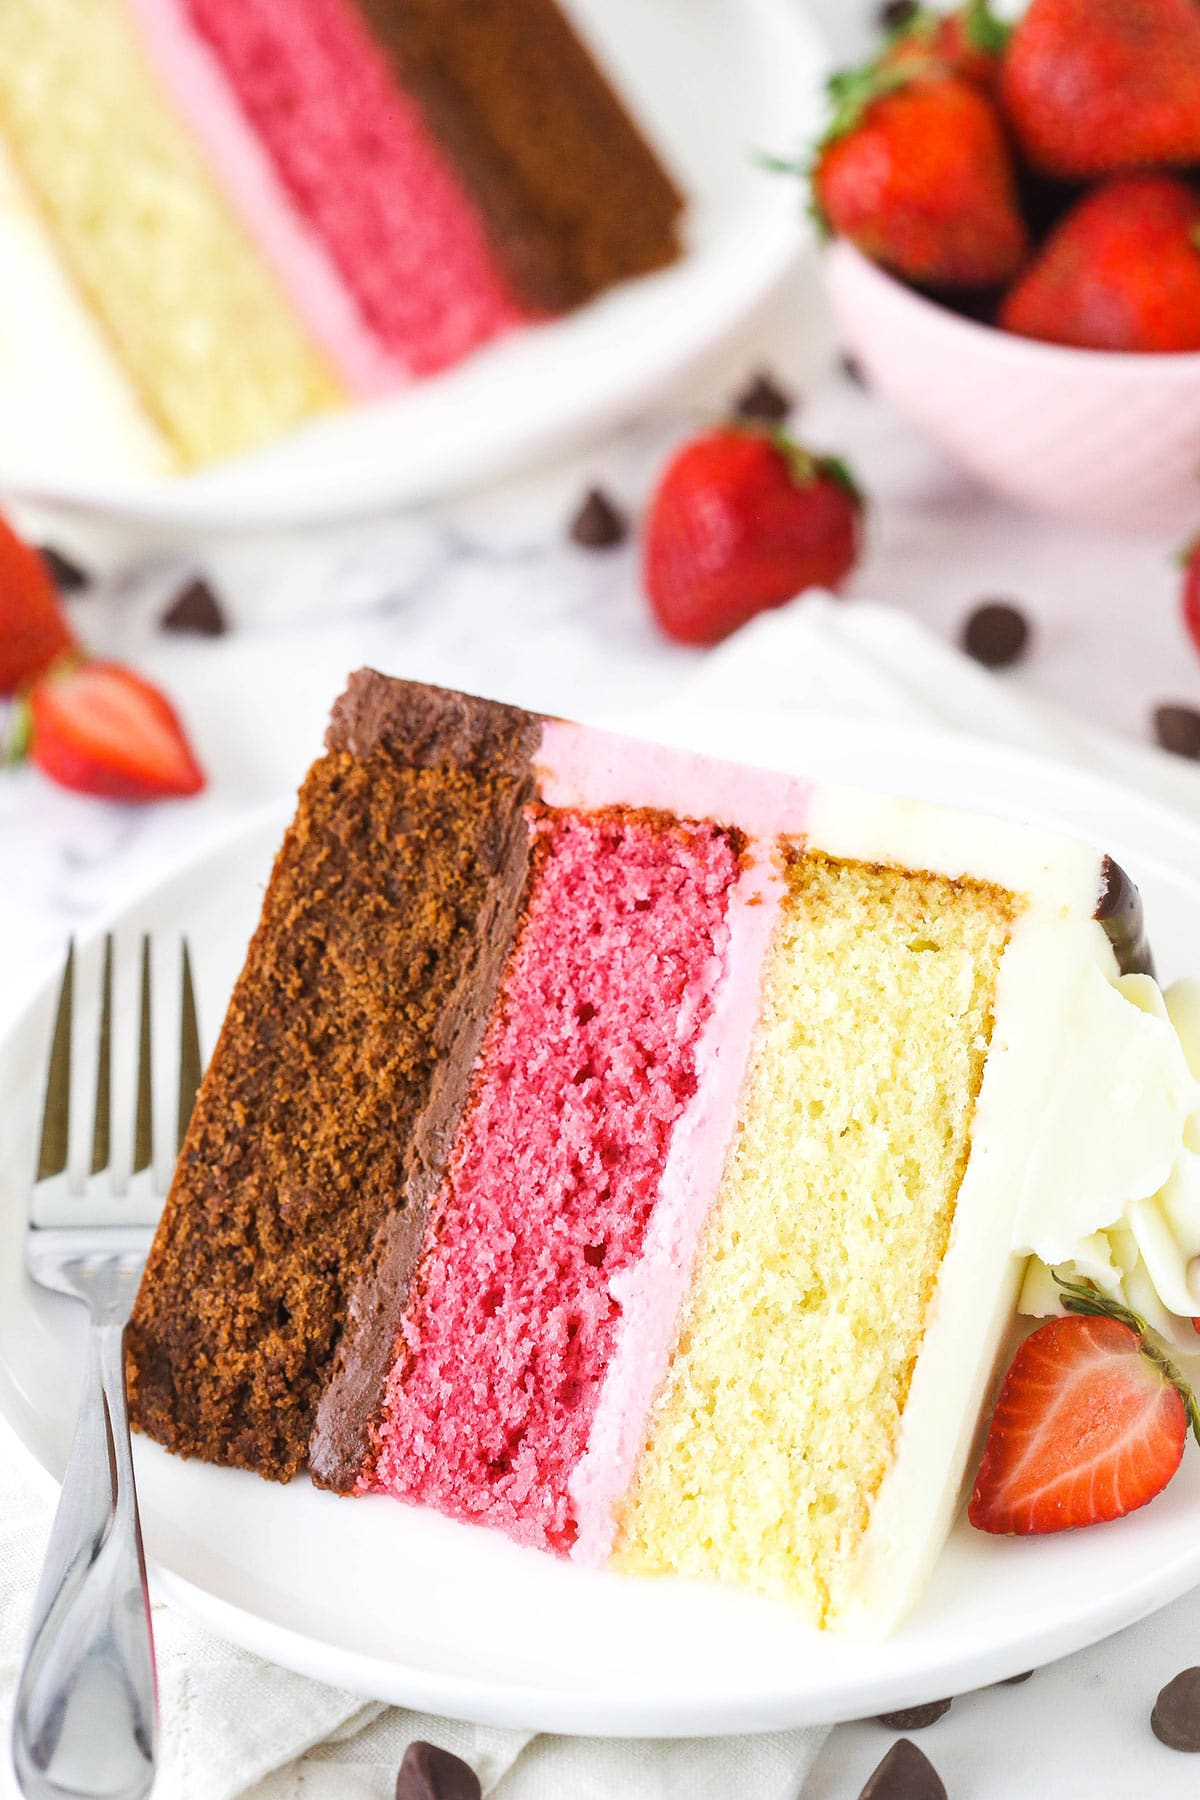 A large slice of neapolitan cake on a plate with a sliced strawberry